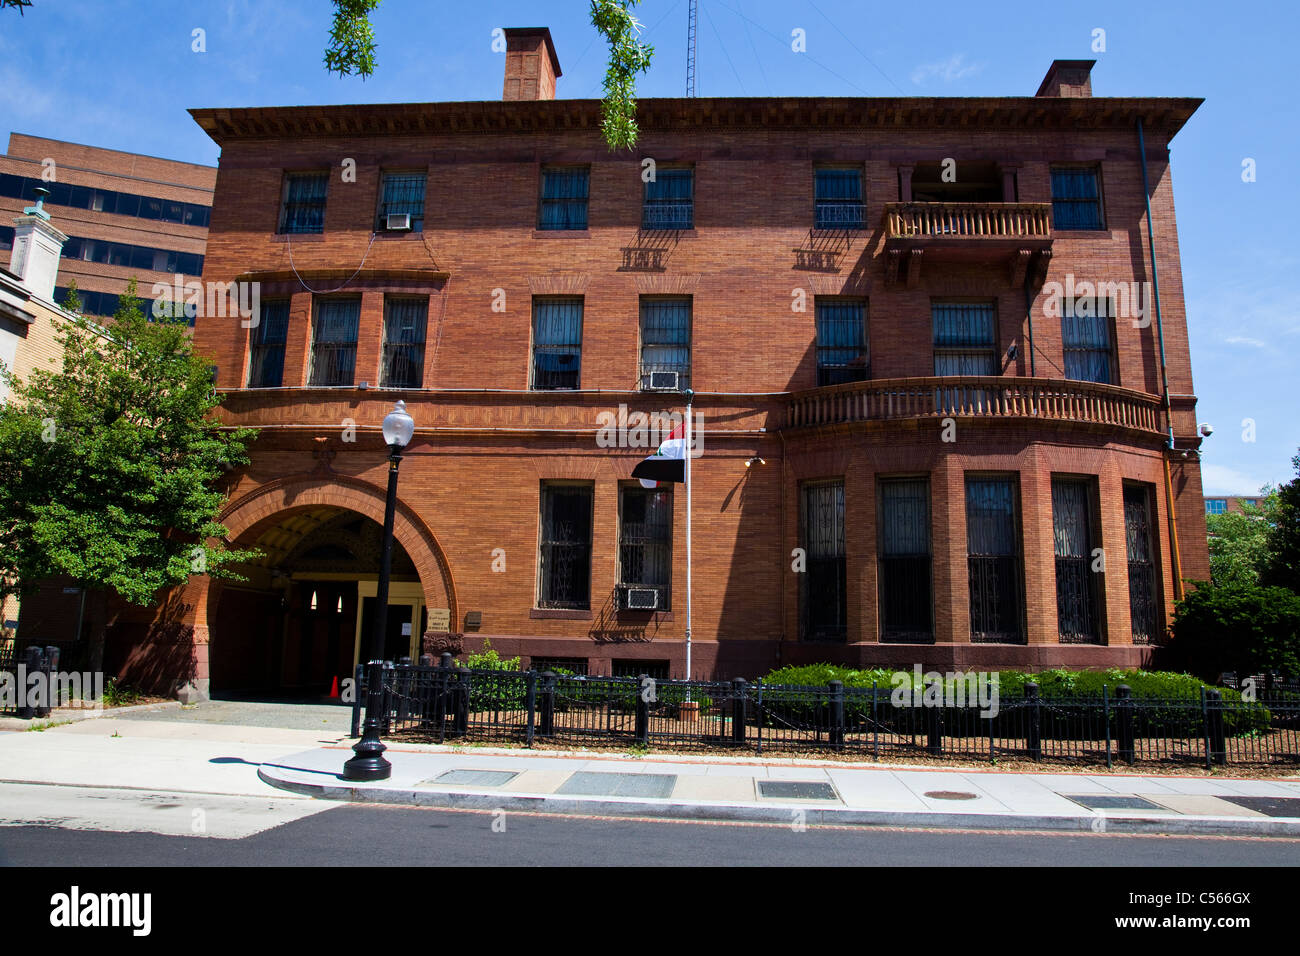 Embassy of Iraq in Washington DC - Stock Image